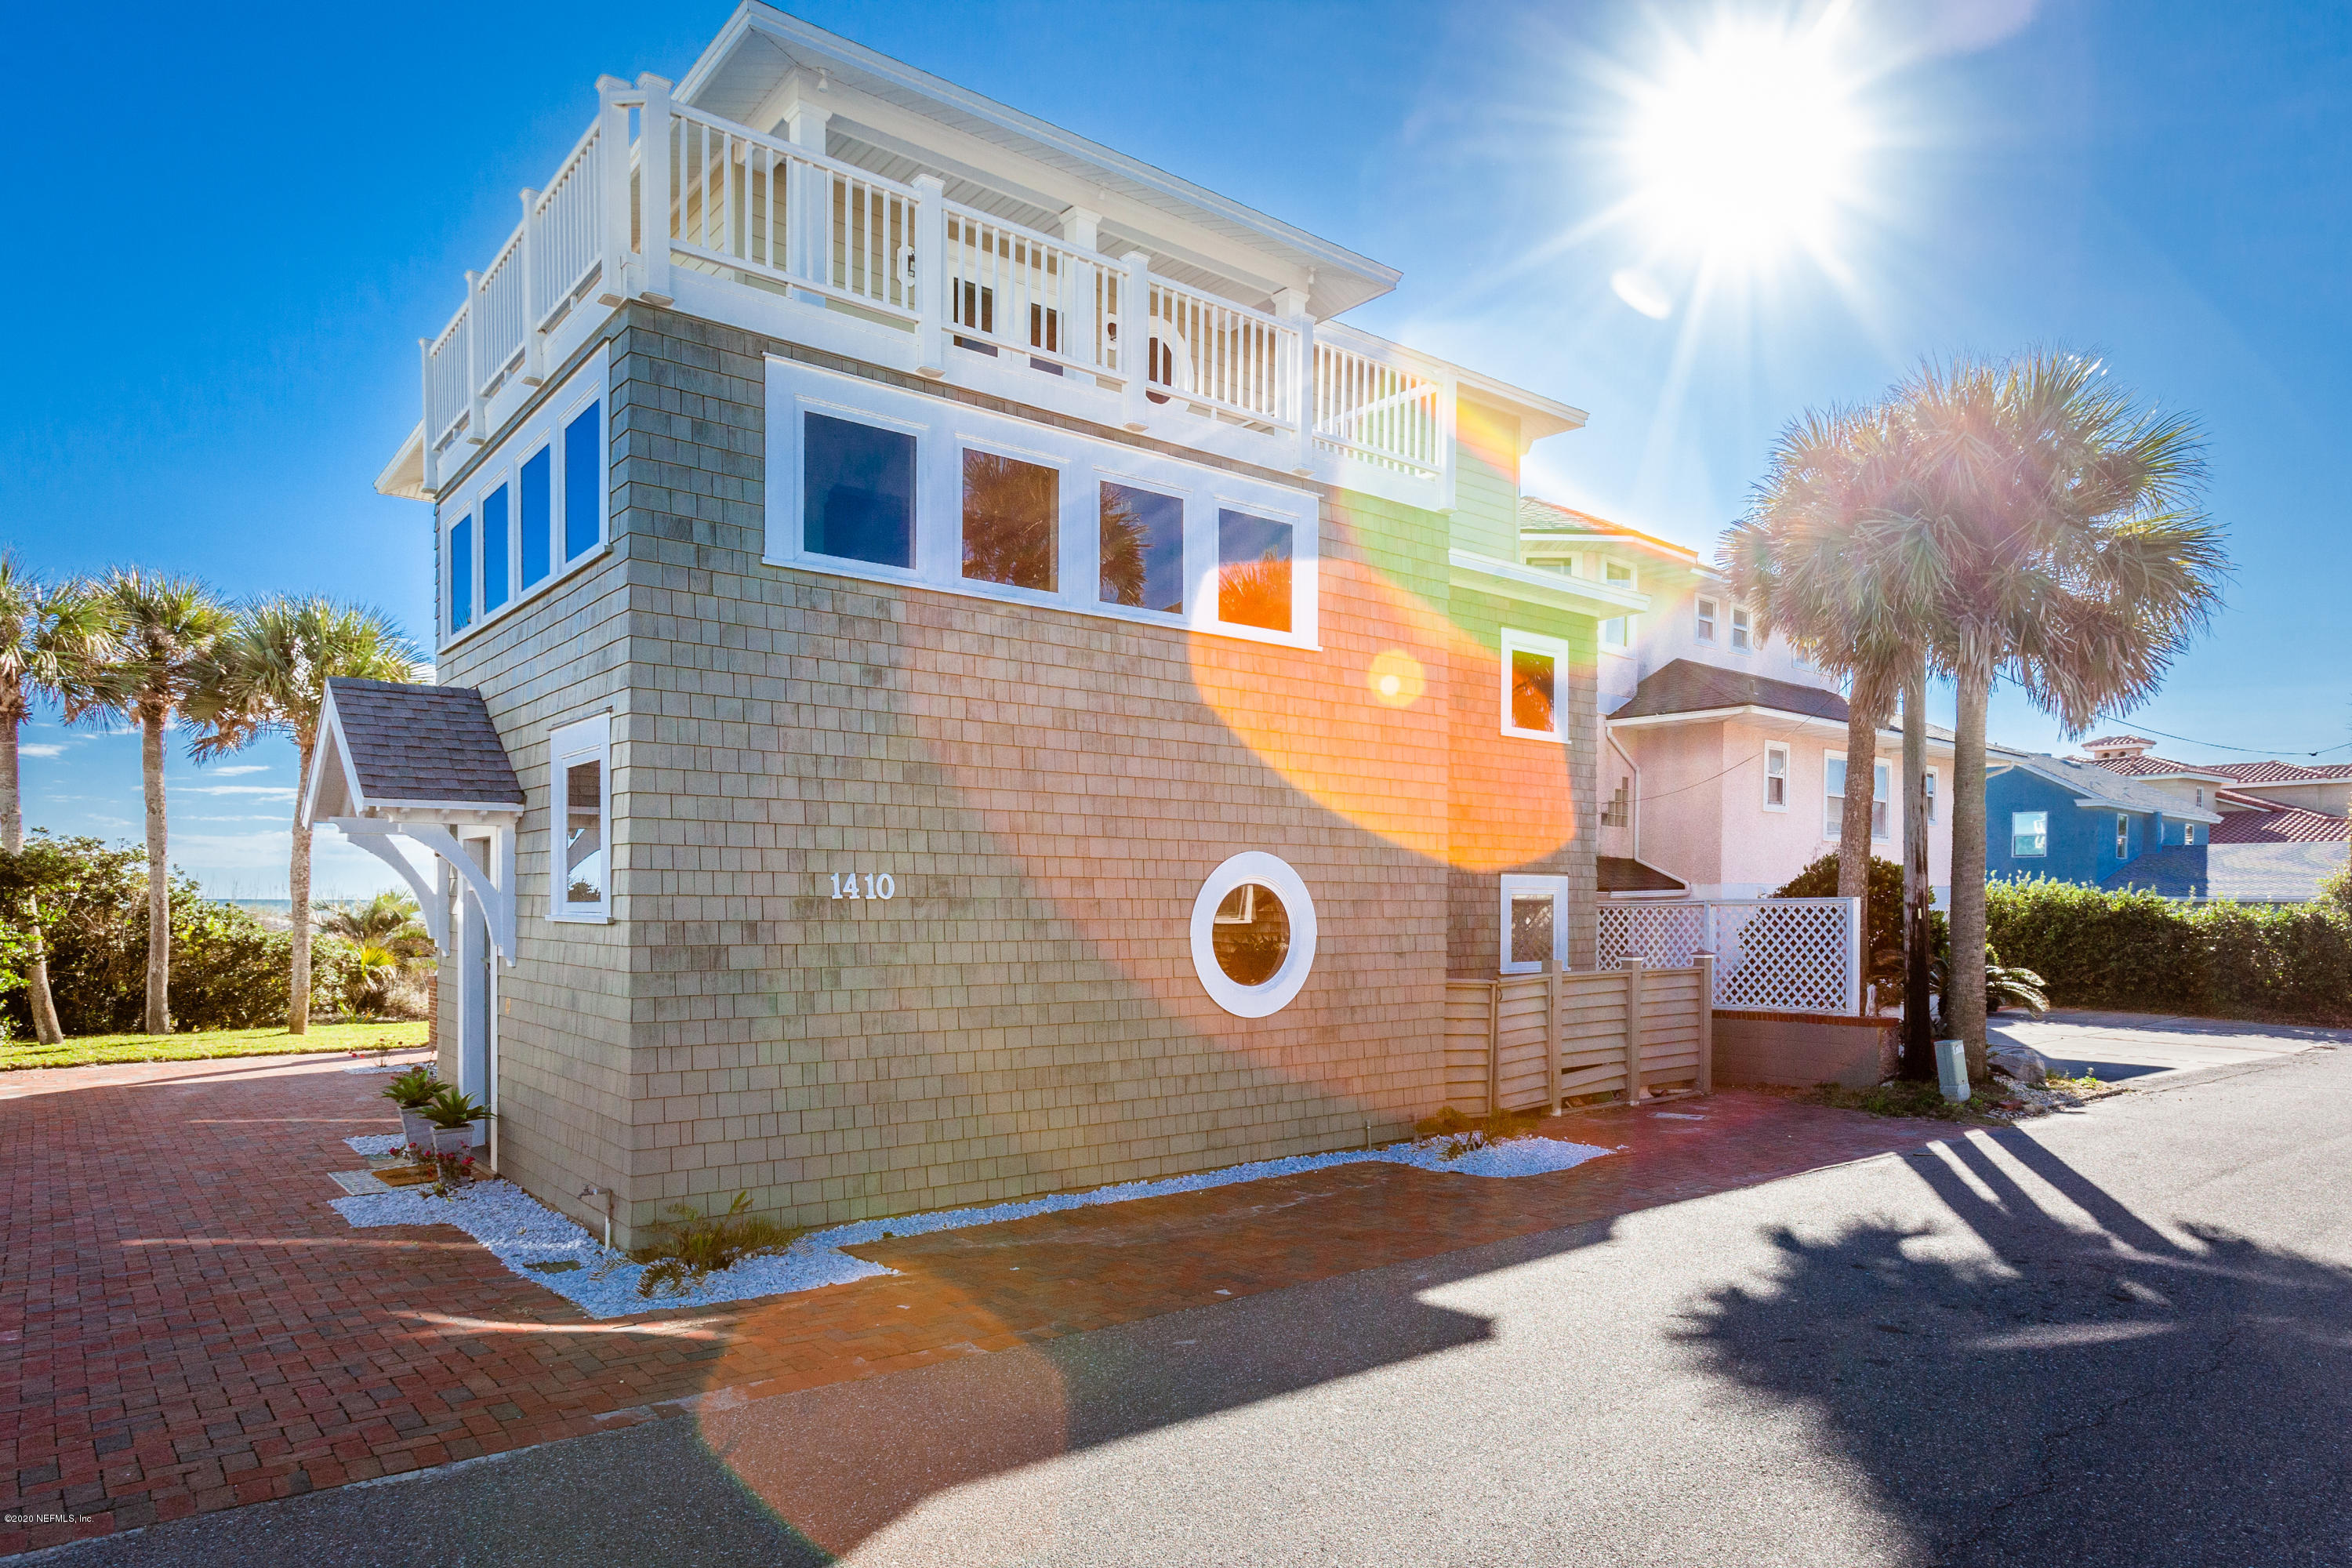 1410 STRAND, NEPTUNE BEACH, FLORIDA 32266, 5 Bedrooms Bedrooms, ,4 BathroomsBathrooms,Residential,For sale,STRAND,1032849